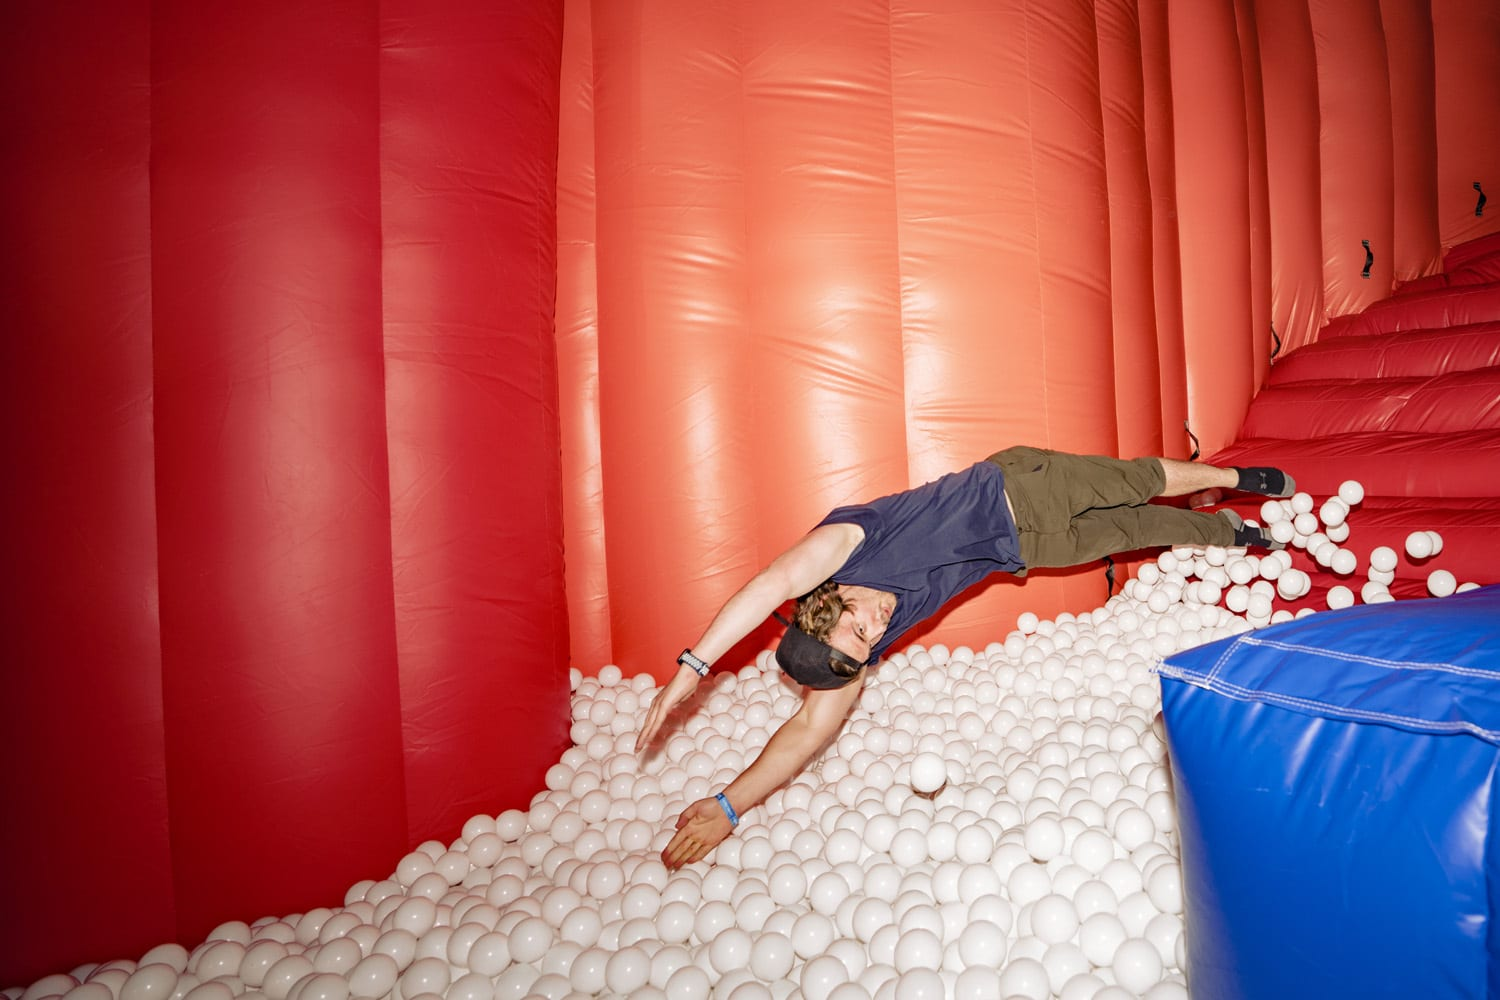 Intersect Festival ball pit